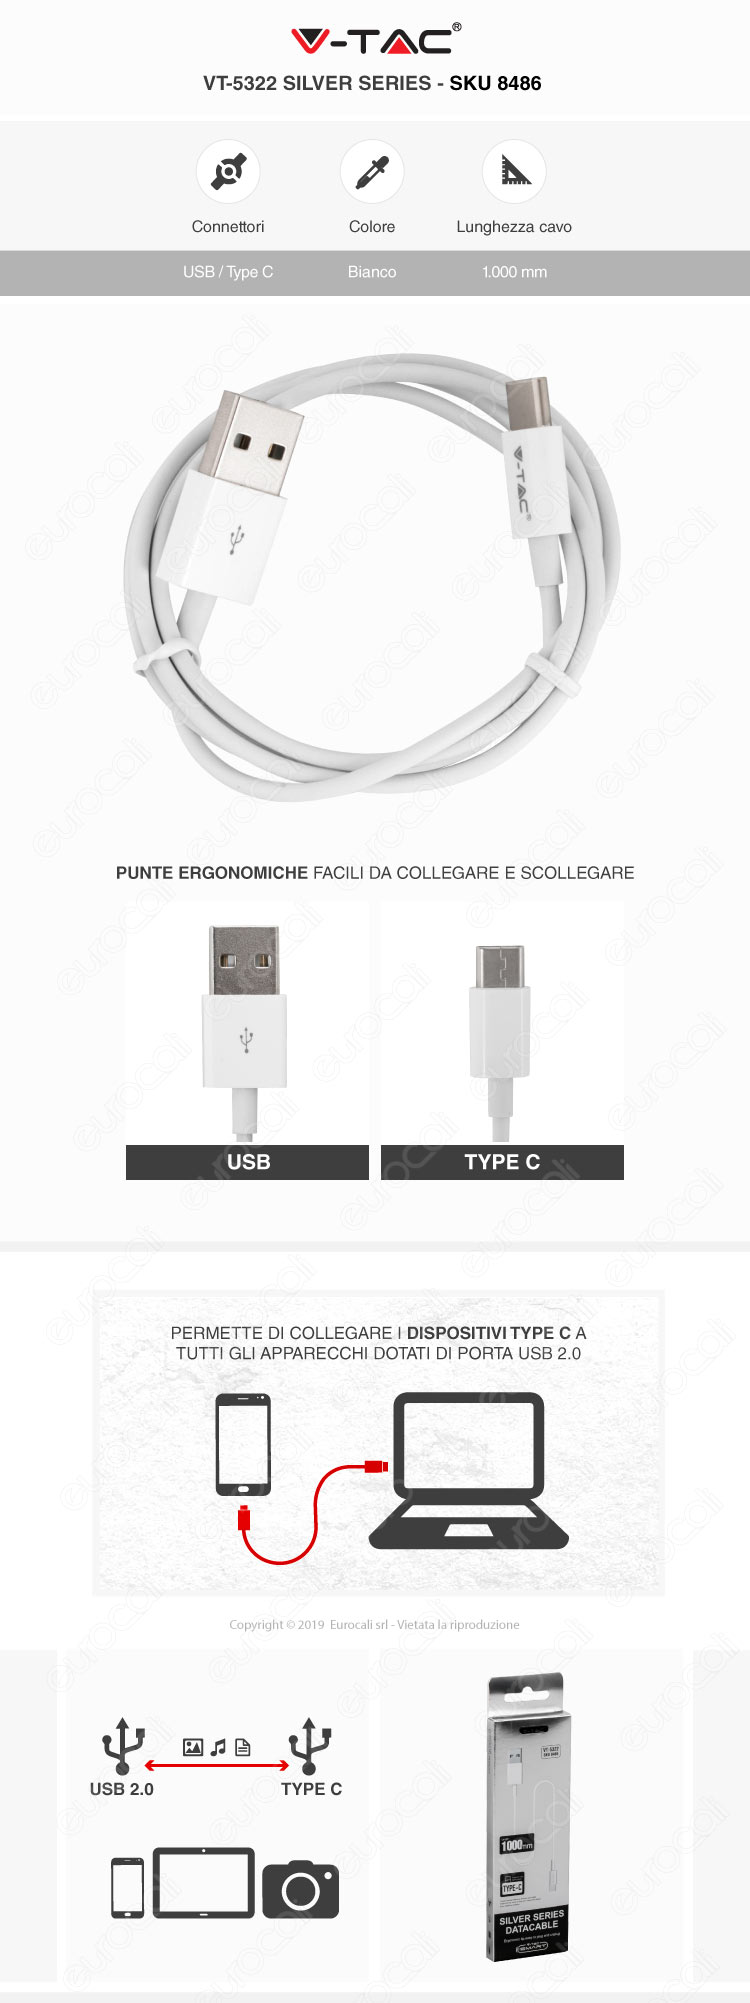 V-Tac VT-5322 Silver series USB Data Cable Type-C Cavo Colore Bianco 1m